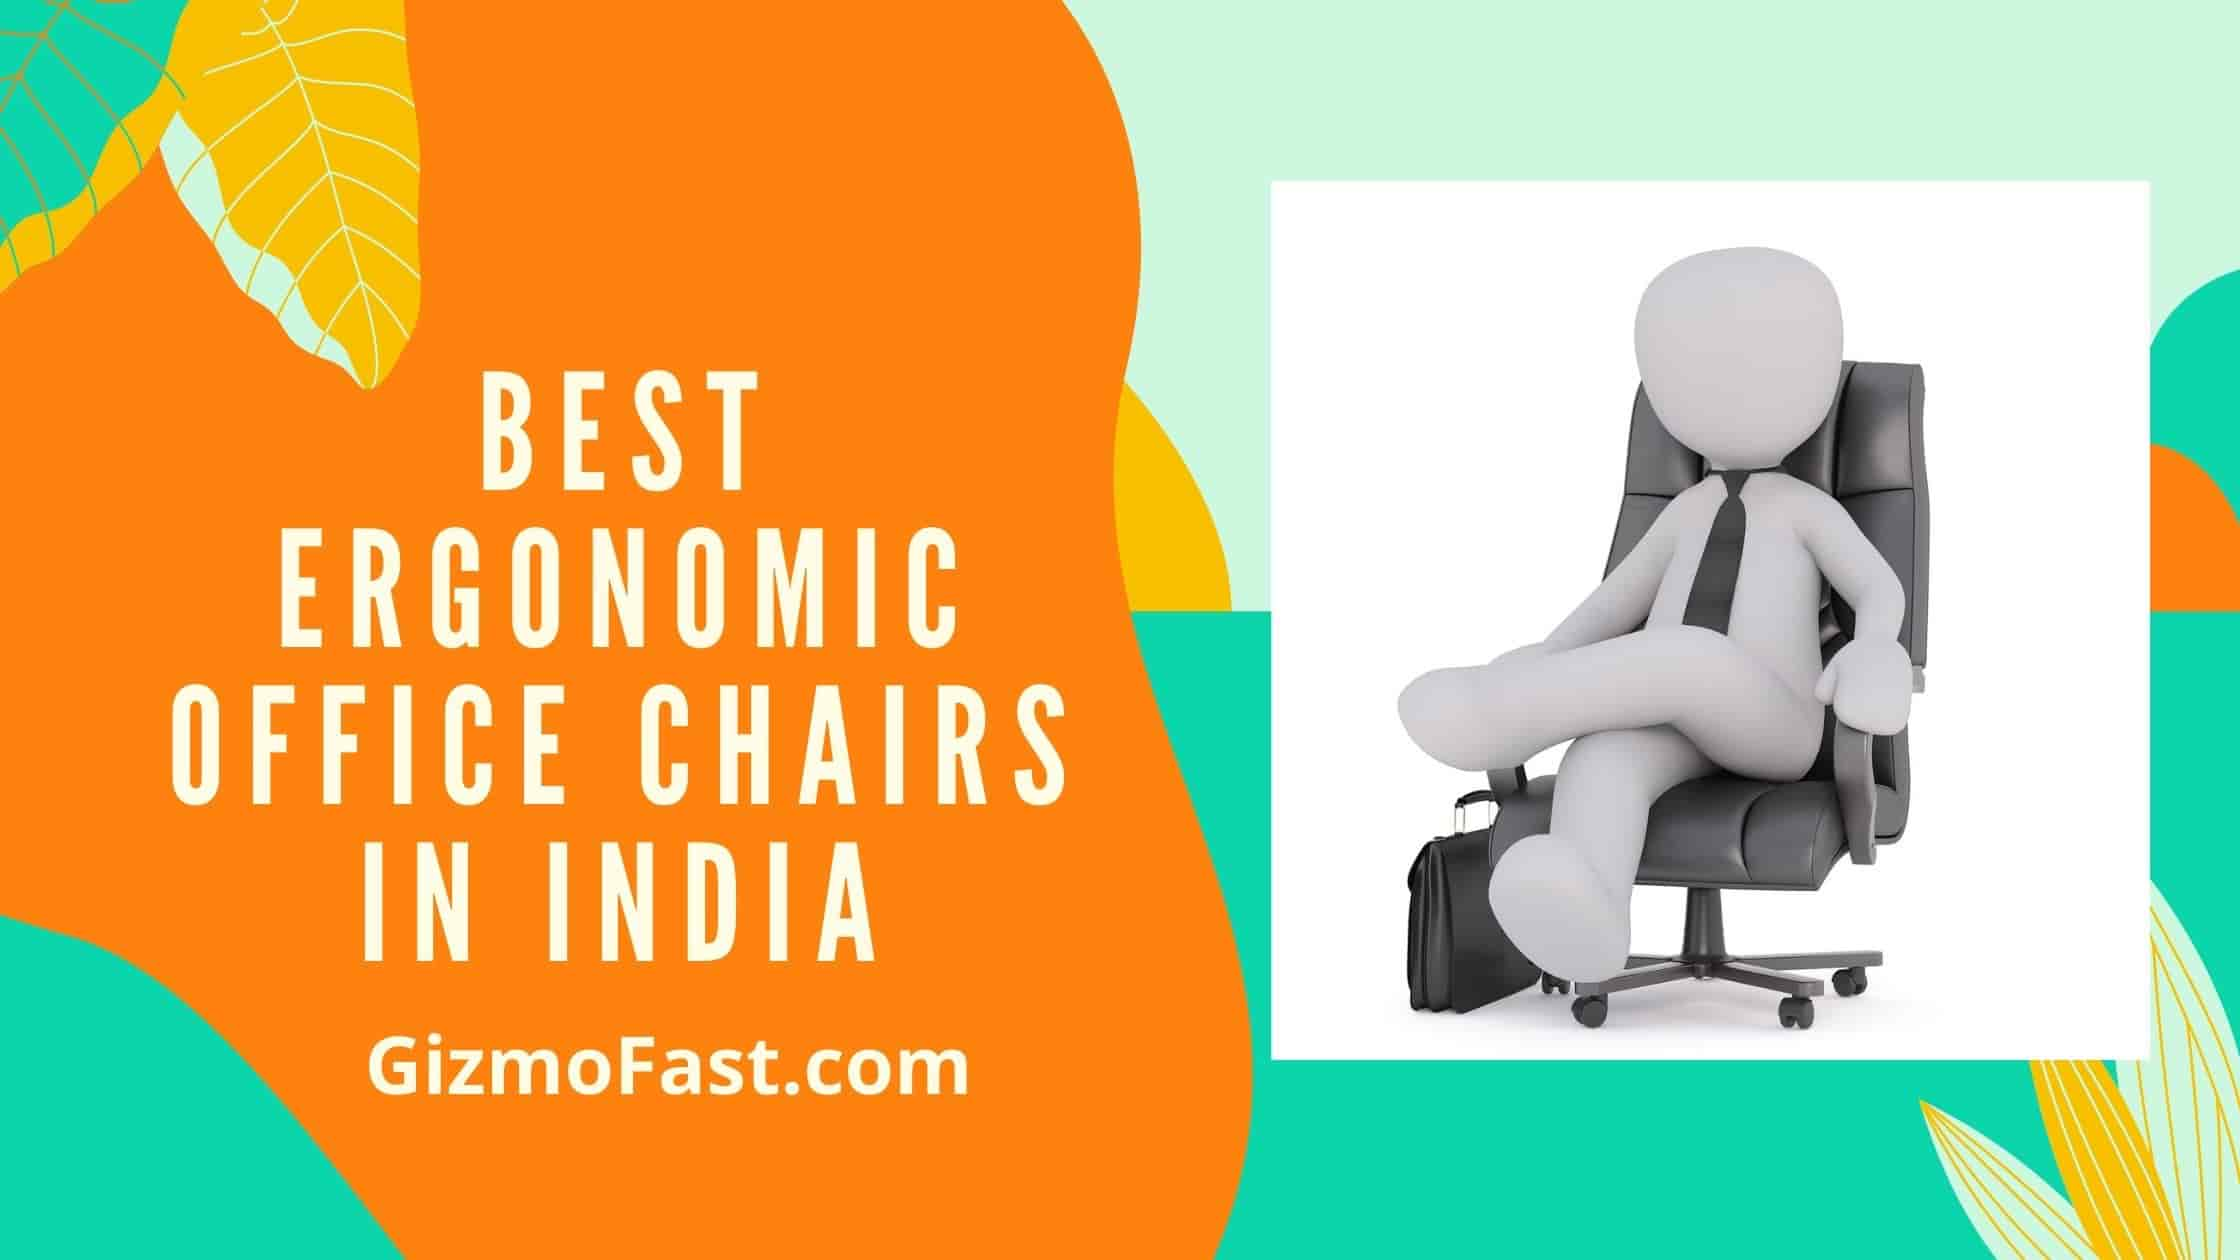 Best Ergonomic Office Chairs In India